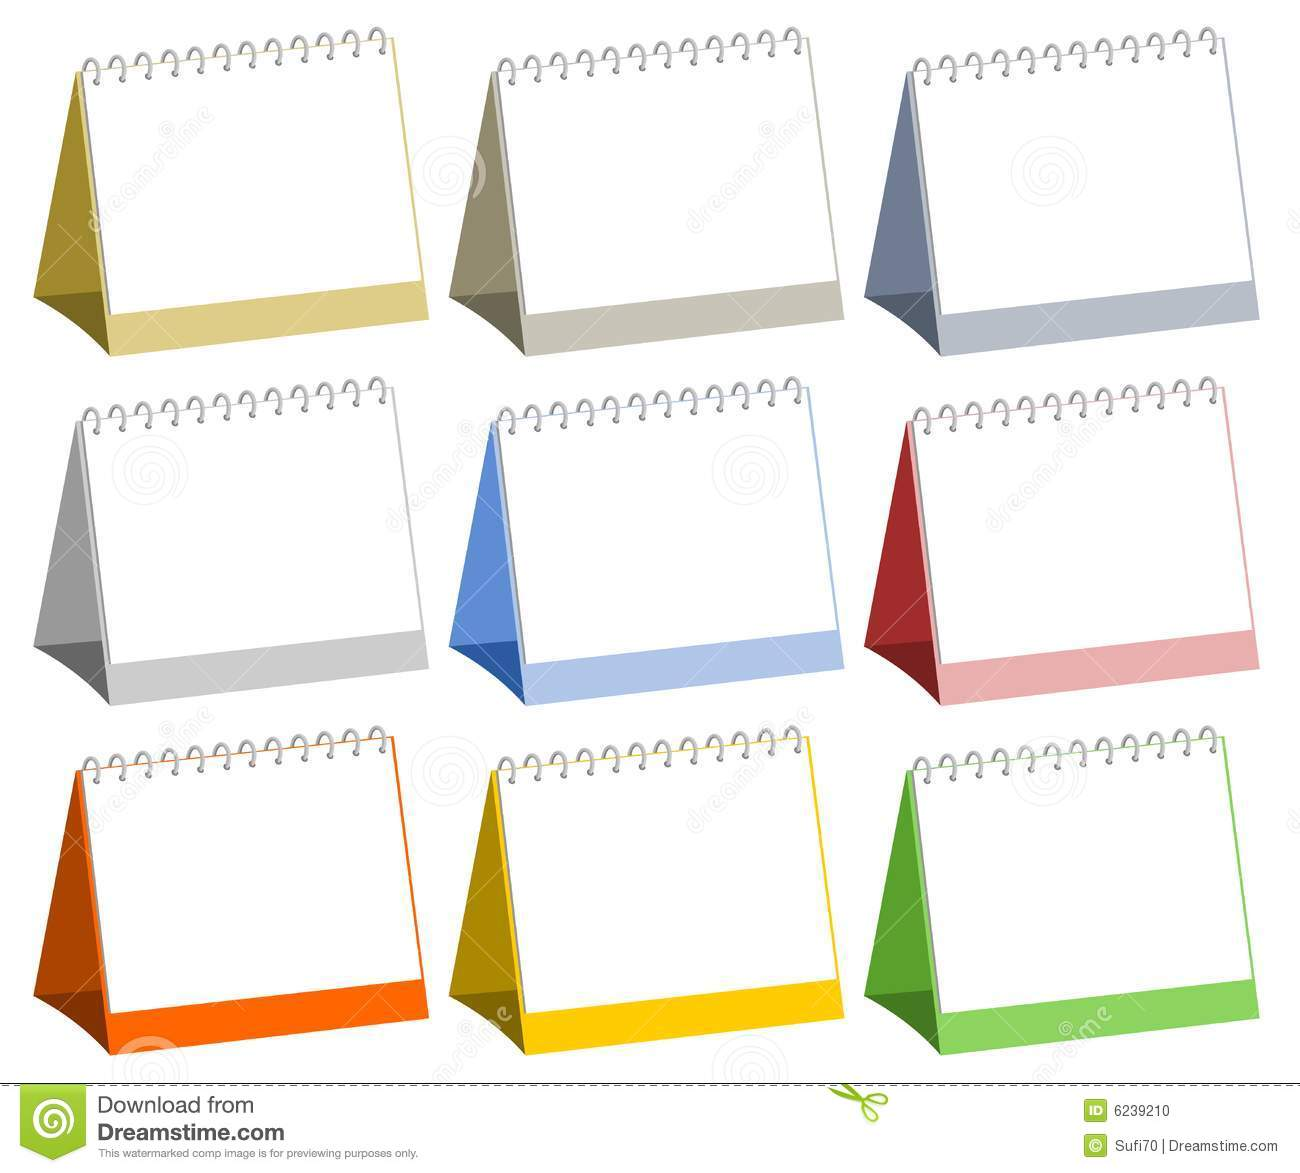 Blank Table Calendars Stock Photo - Image: 6239210